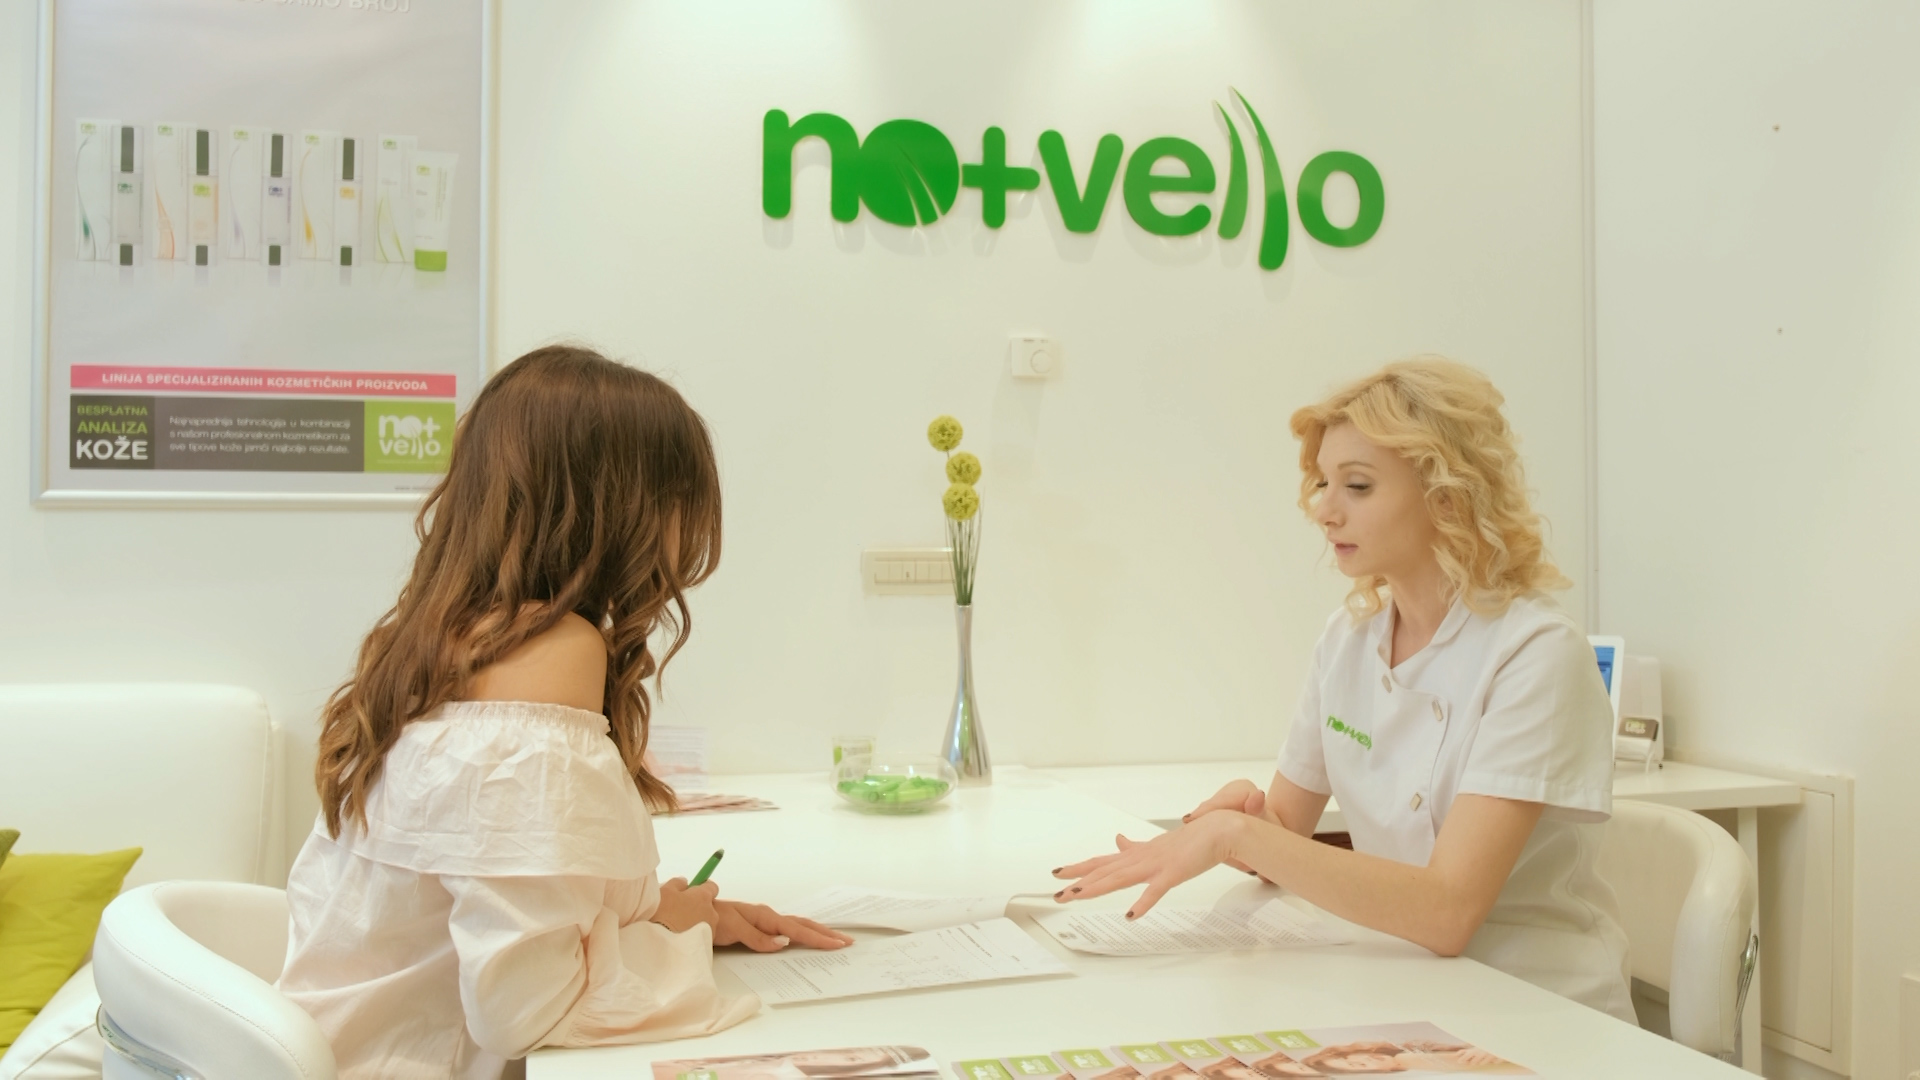 Novello LED tretmani 1